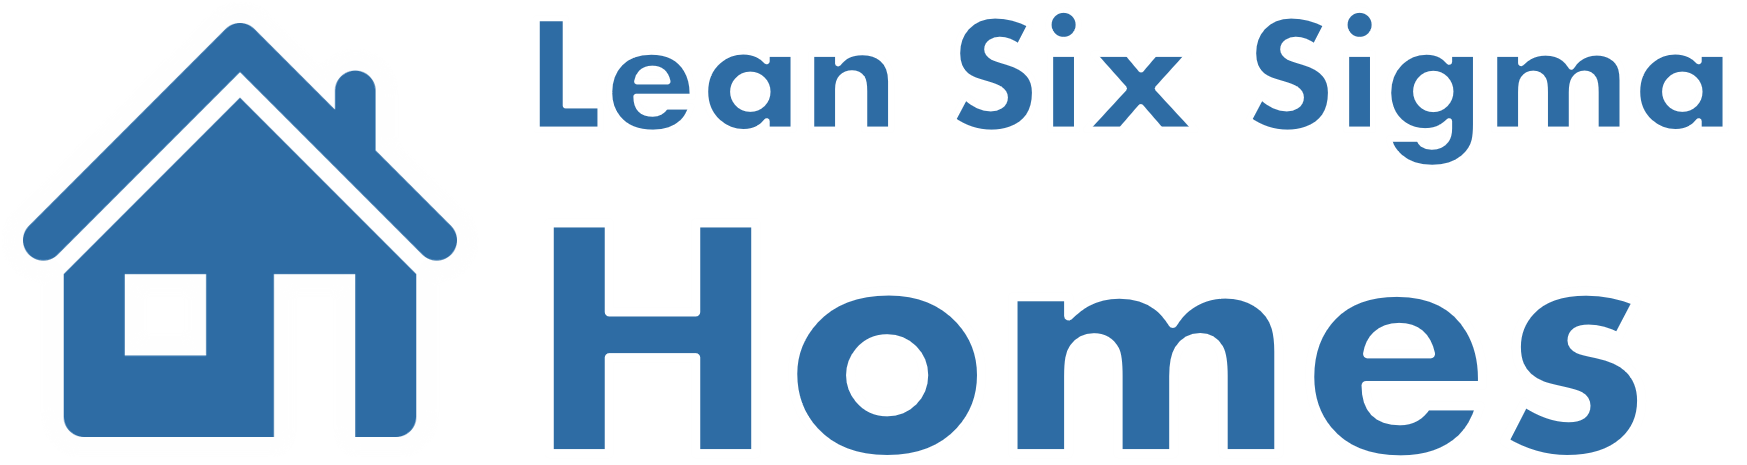 Lean Six Sigma Homes